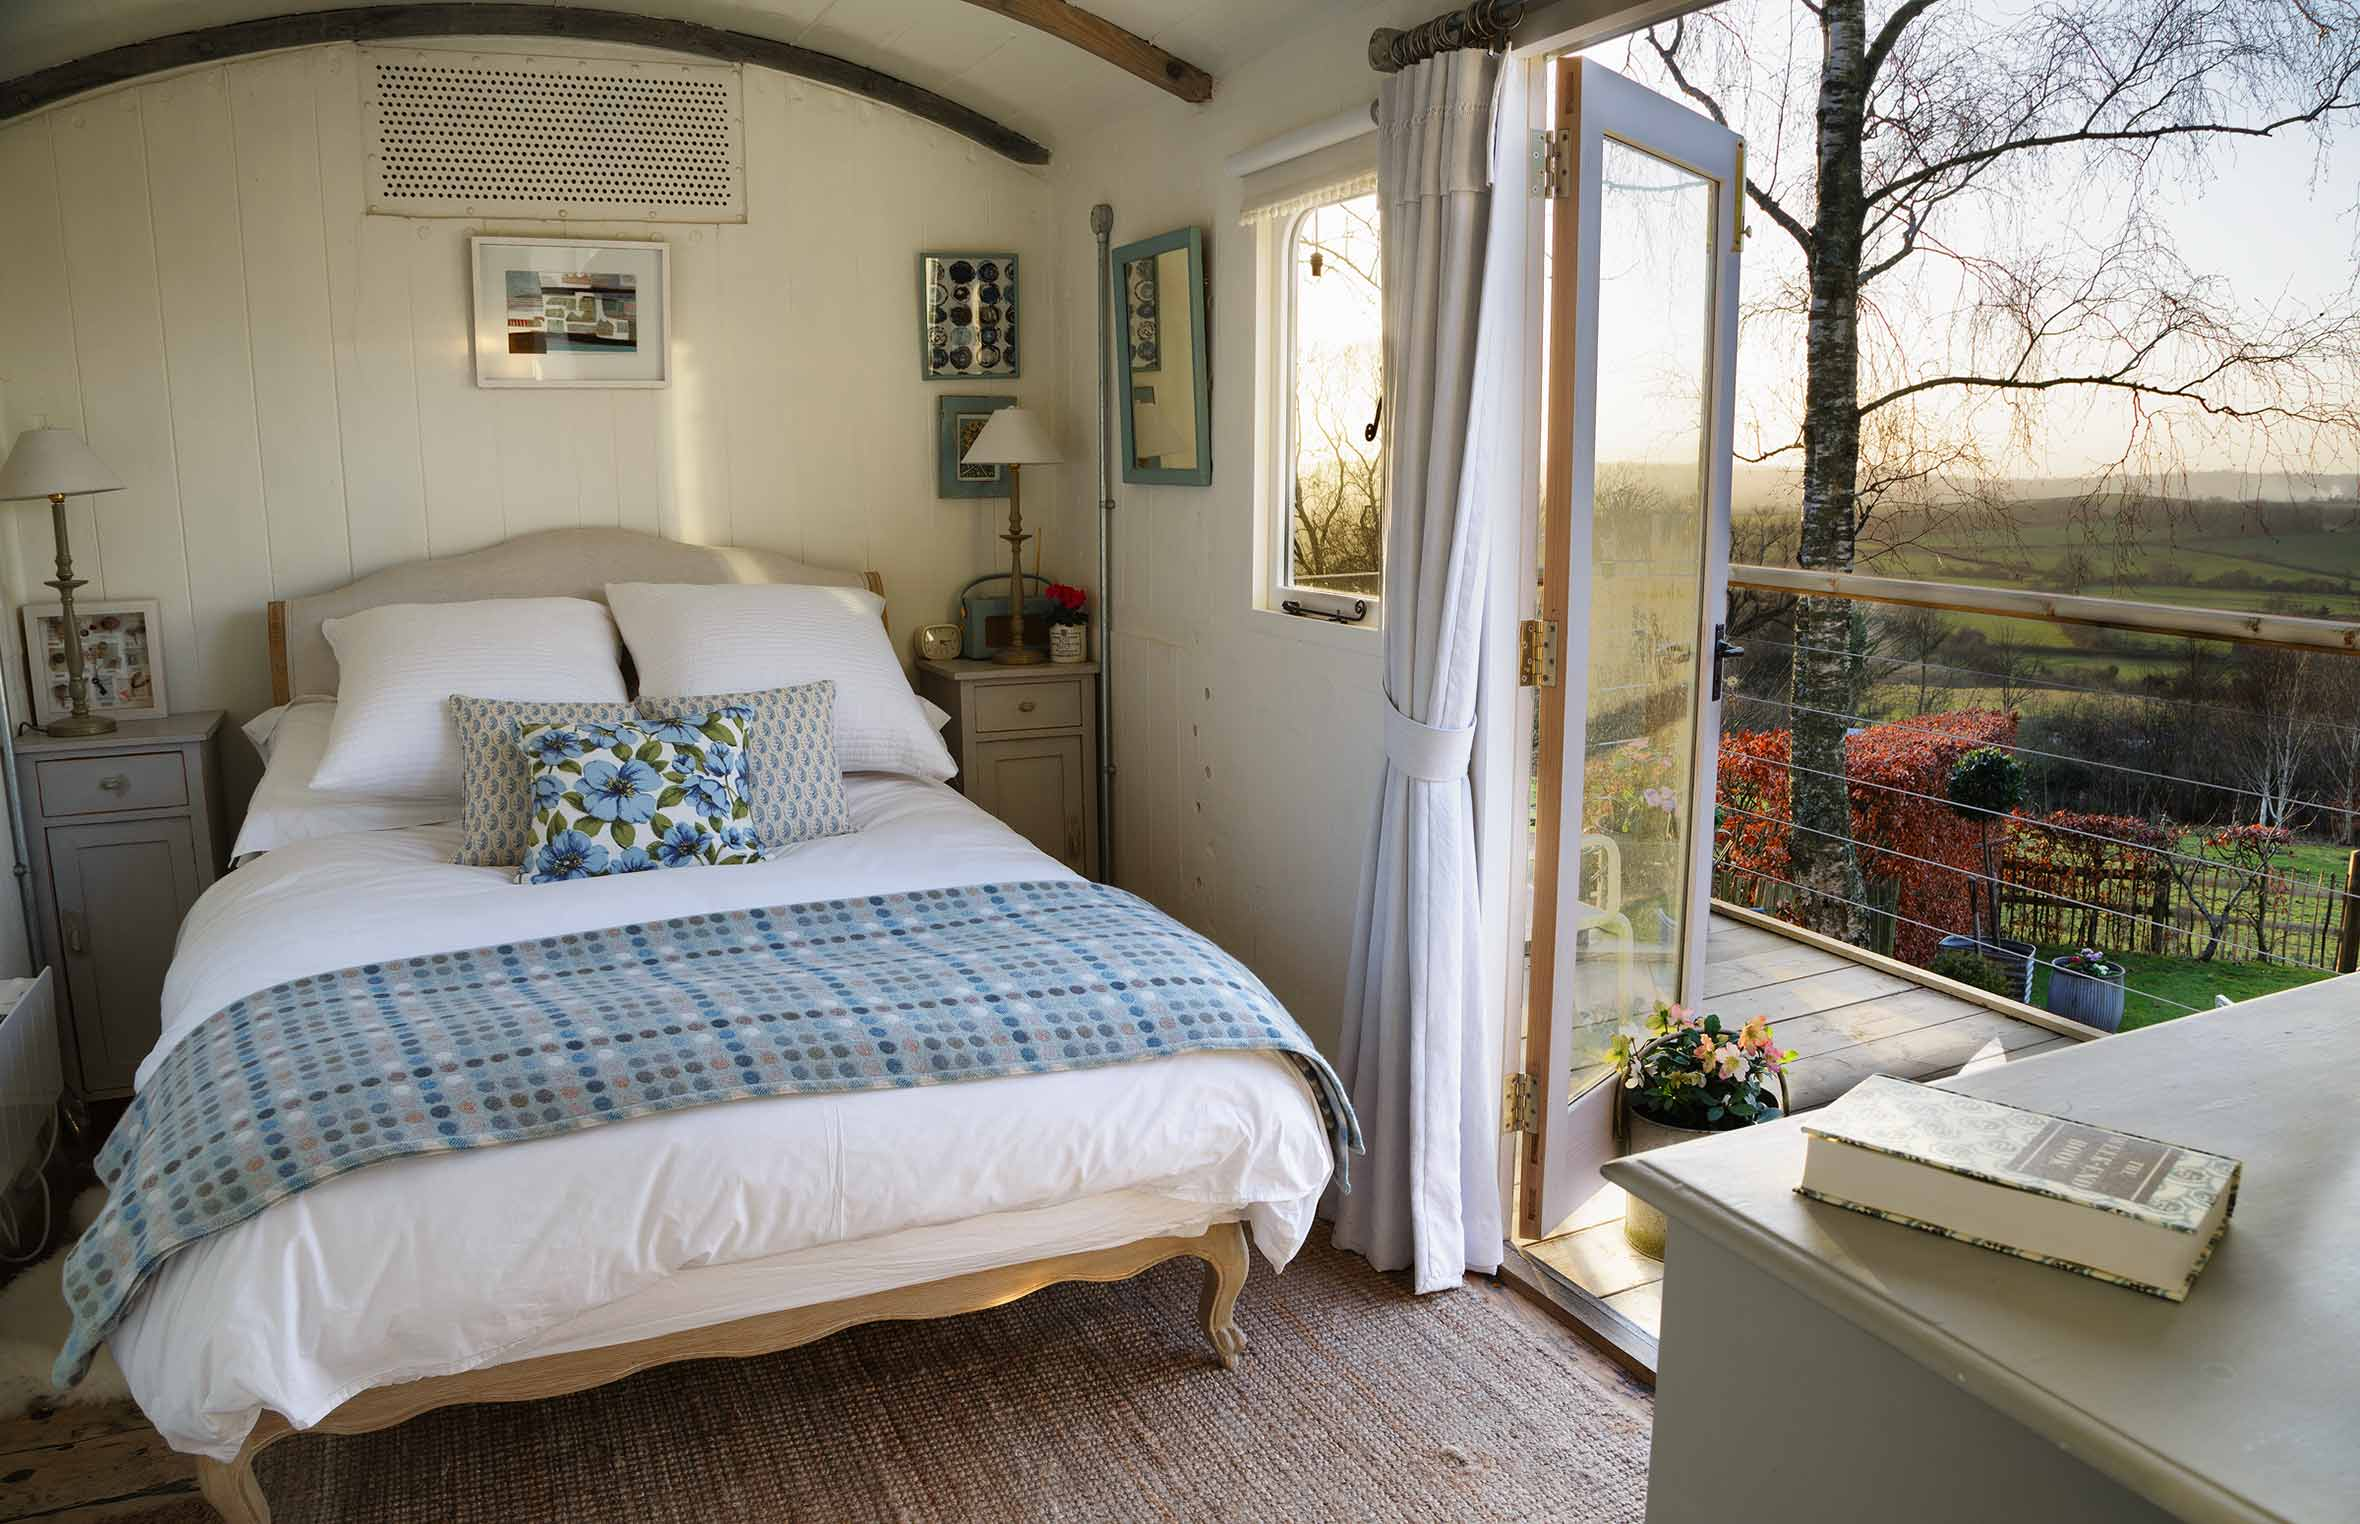 The Wagon's Bedroom overlooking the private garden